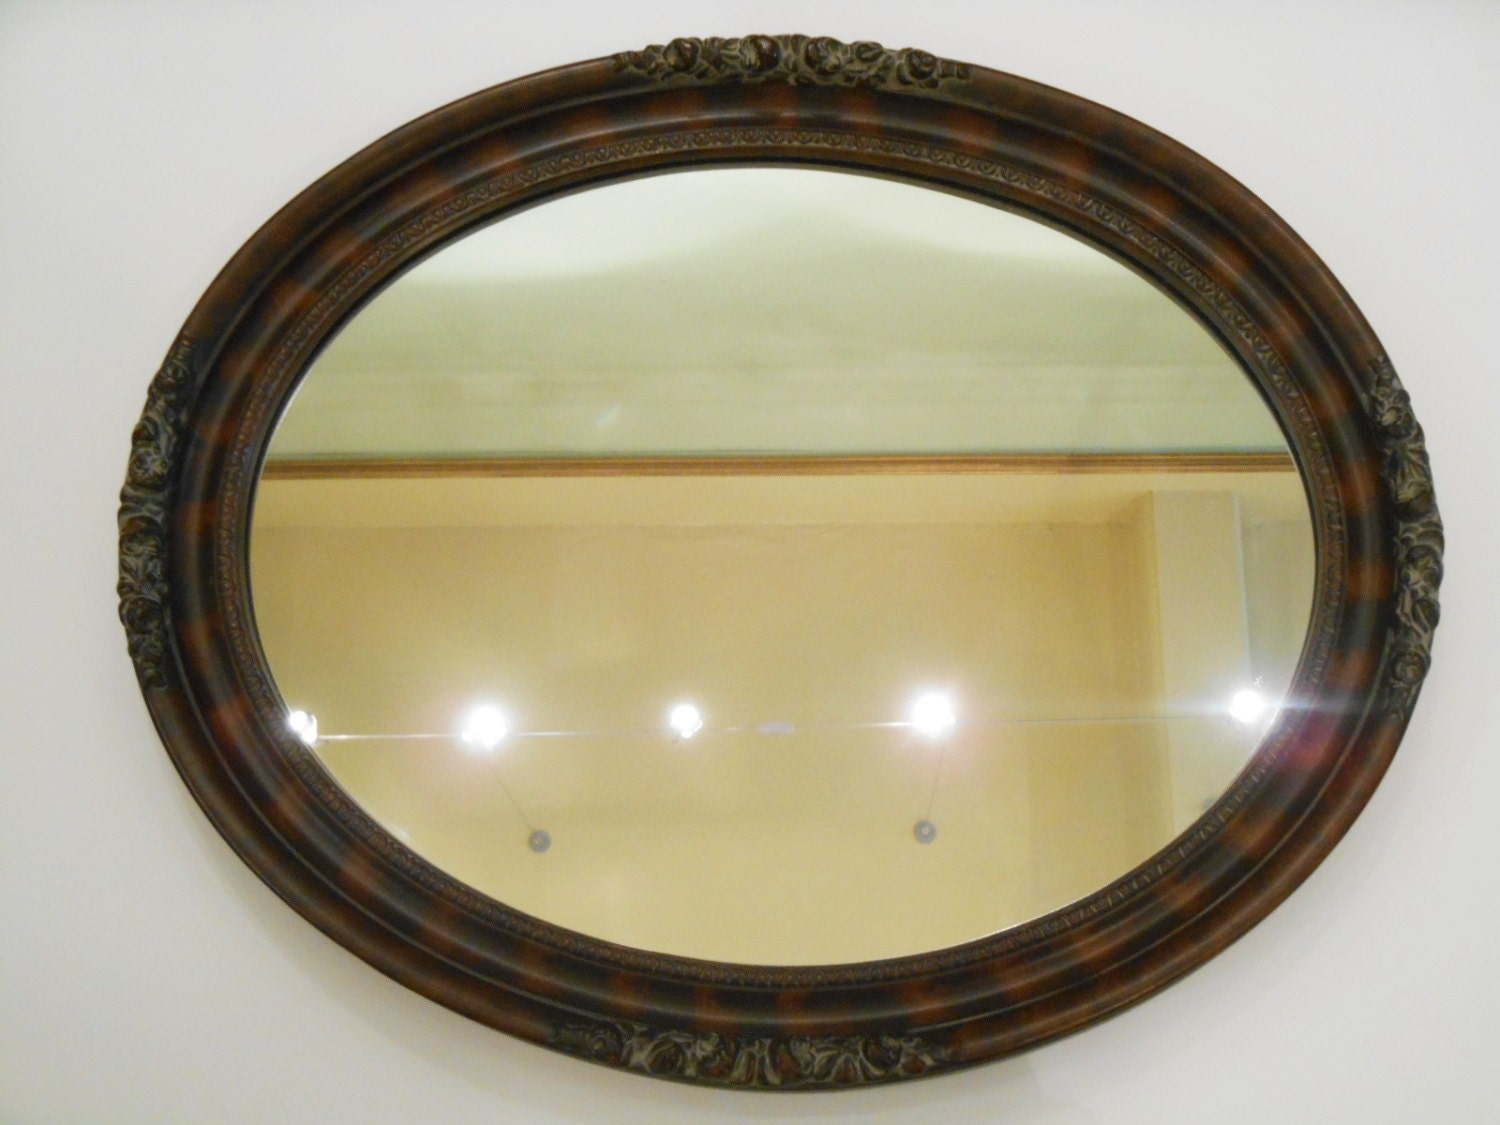 Oval Mirror Framed In Wood With Florettes